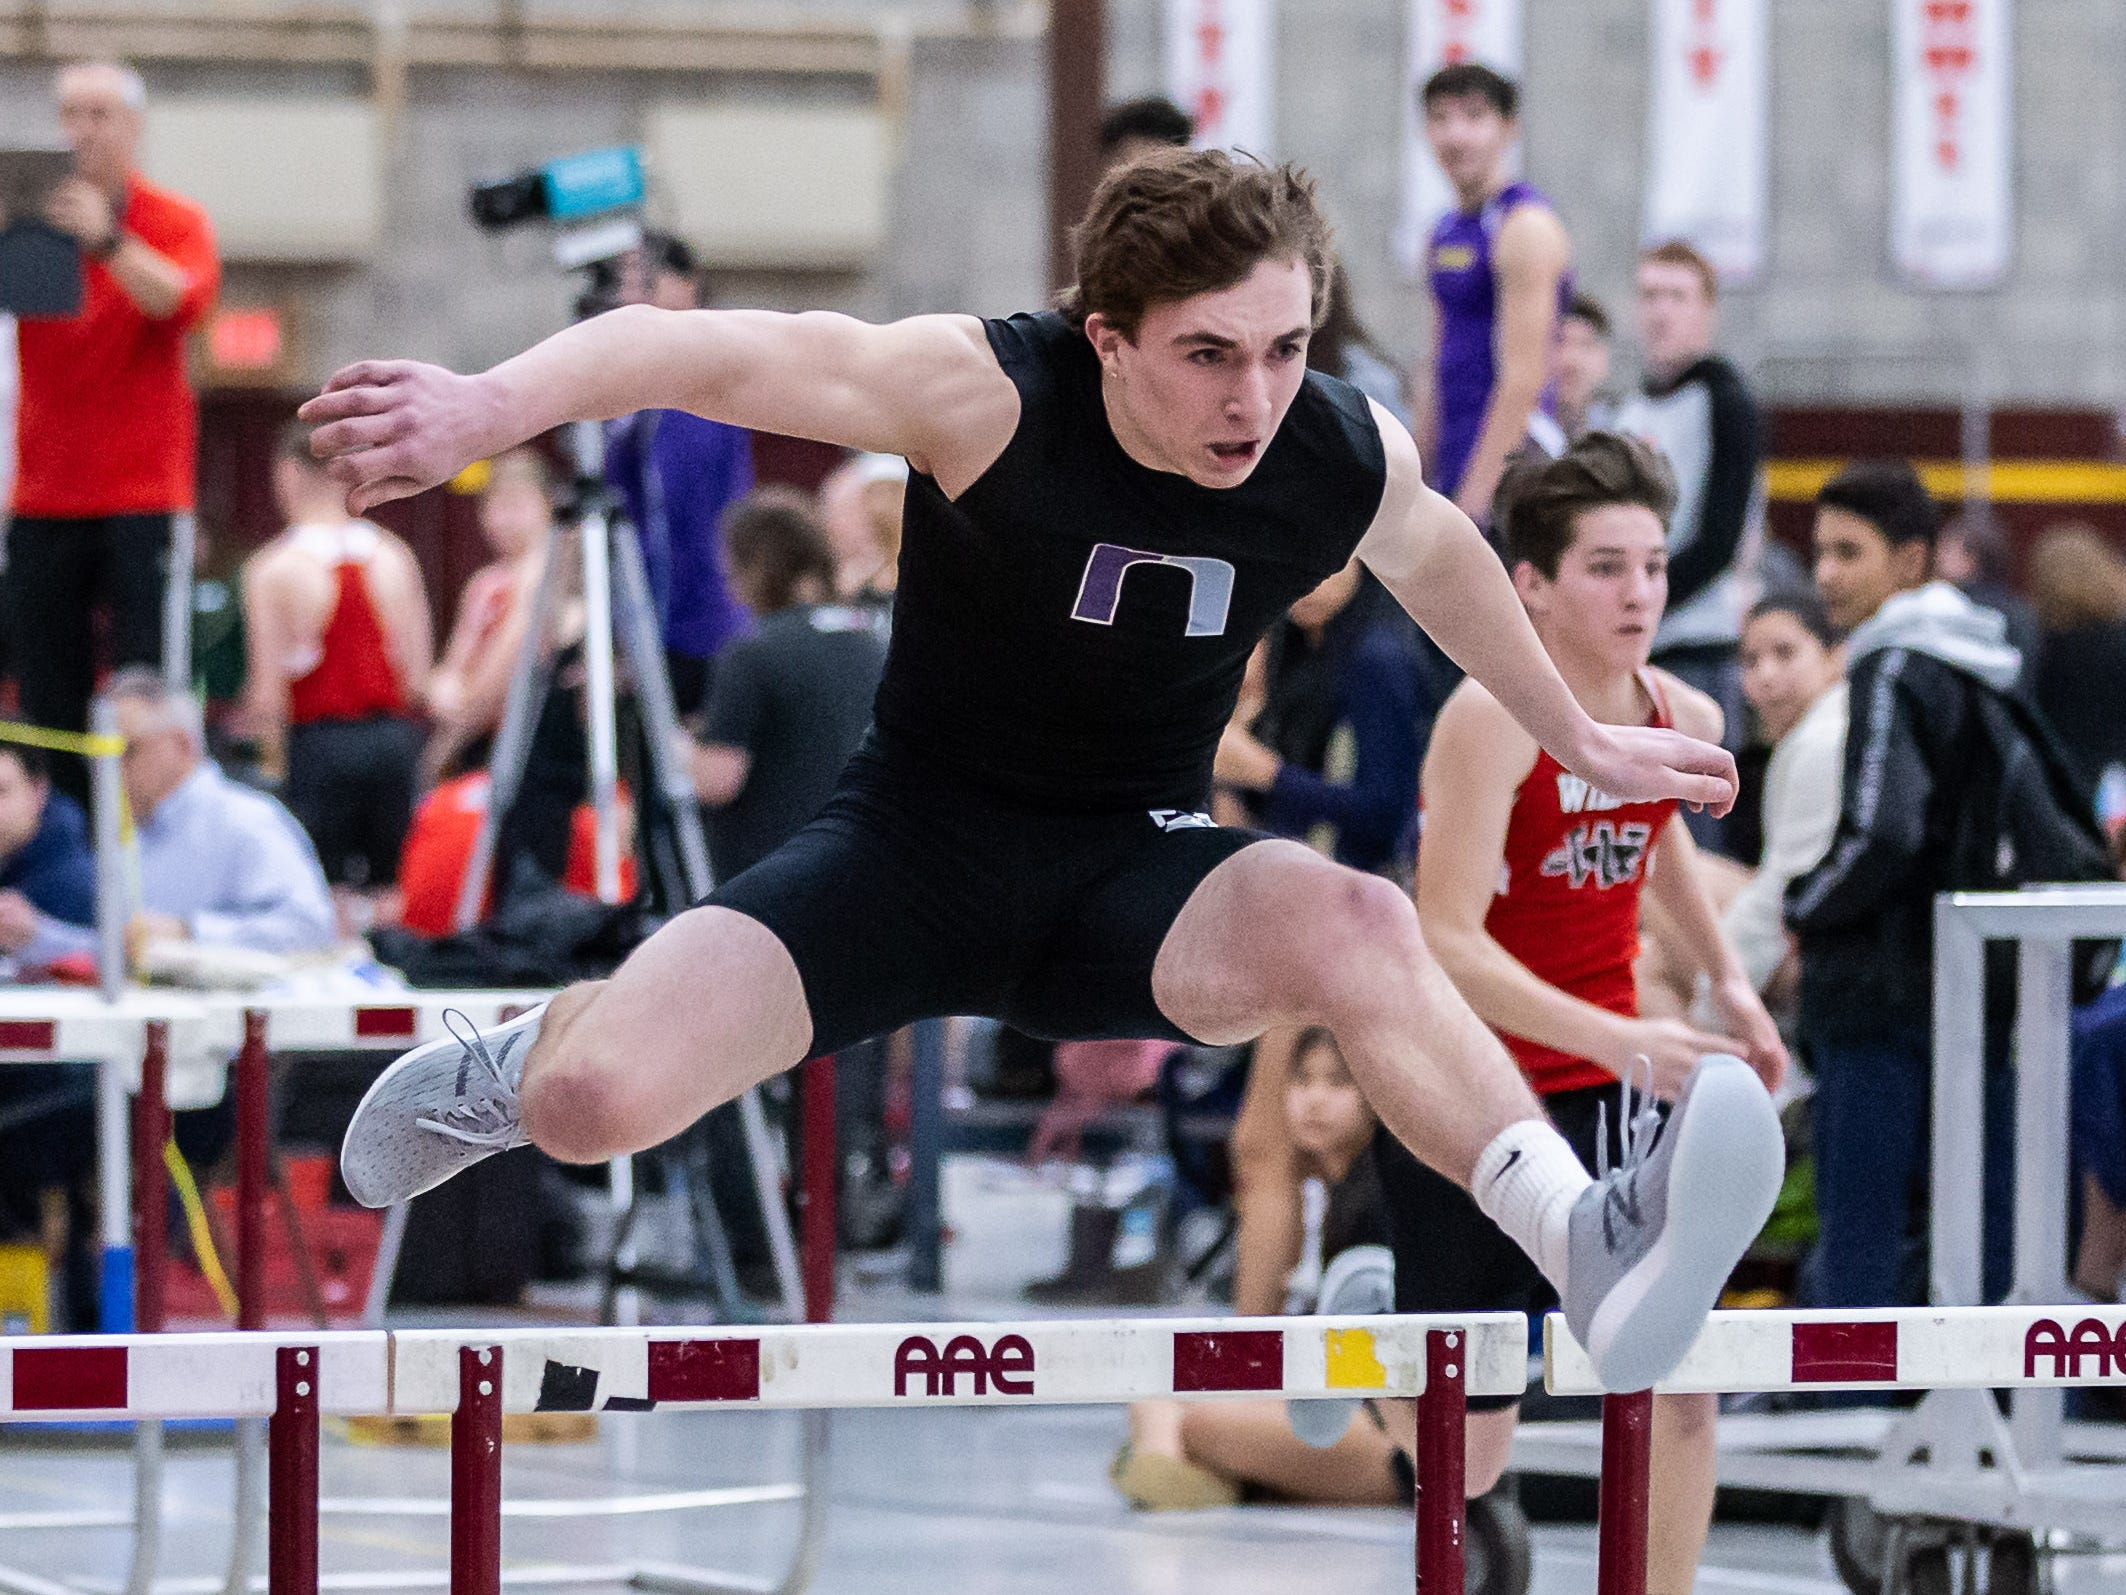 Waukesha North's Nicholas Perez competes in the 55 meter hurdles at the Reinhard Bulldog Relays hosted by West Allis Central on Friday, March 15, 2019.